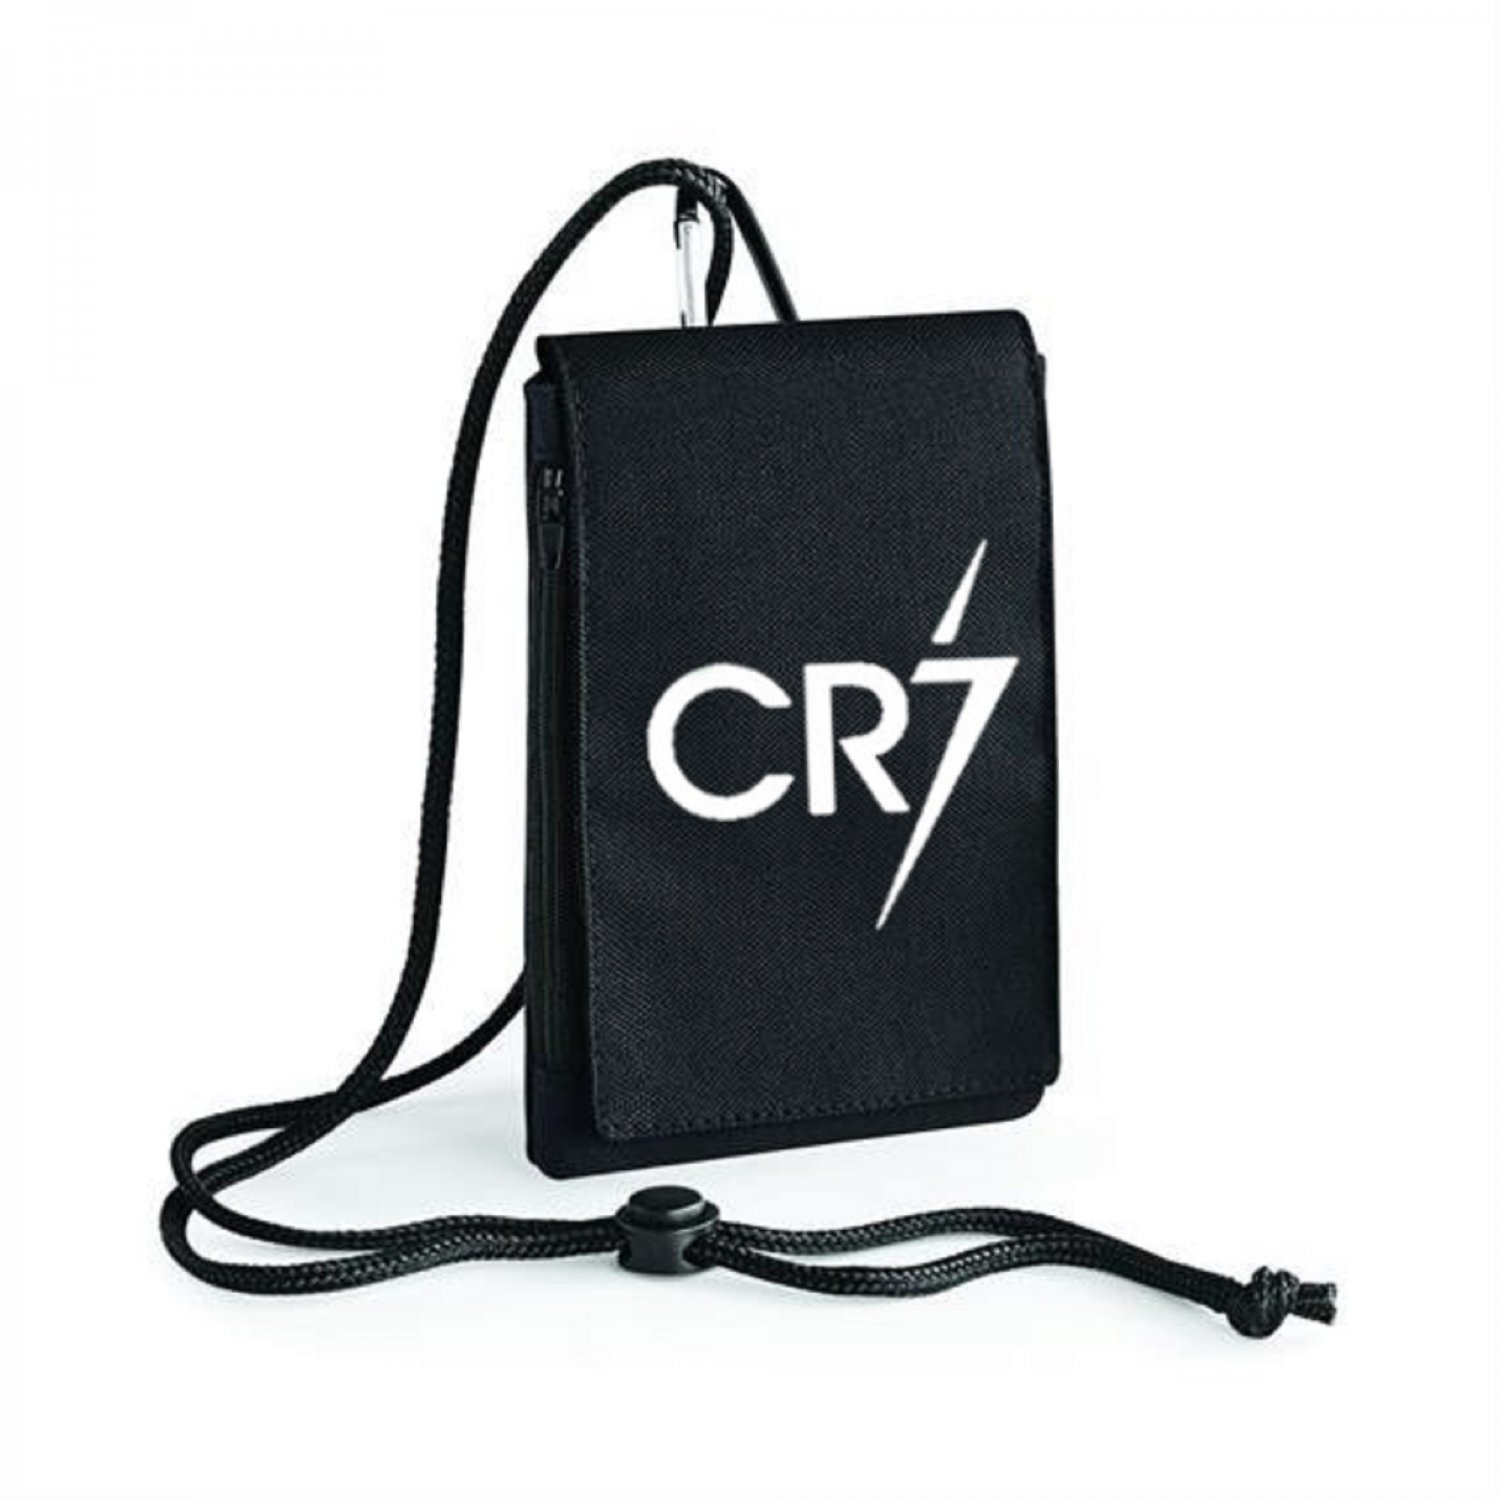 Cristiano Ronaldo CR7 light Inspired Bagbase Phone Pouch